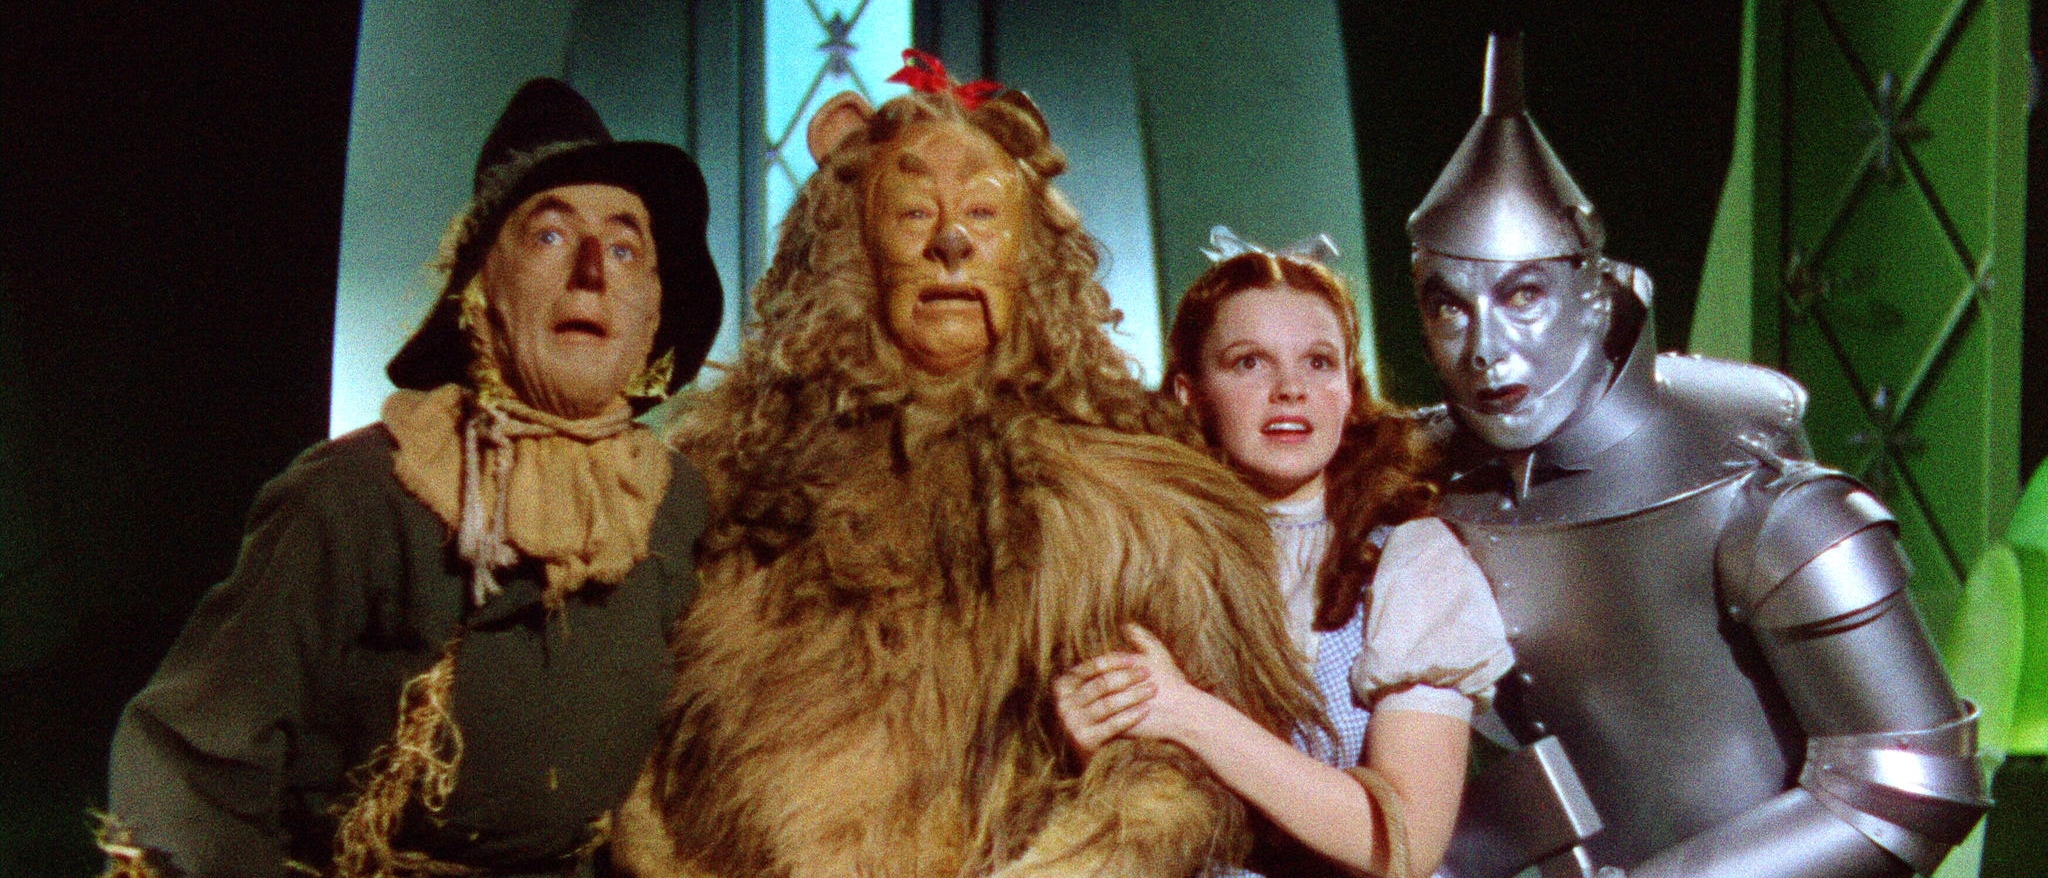 5. The Wizard of Oz -